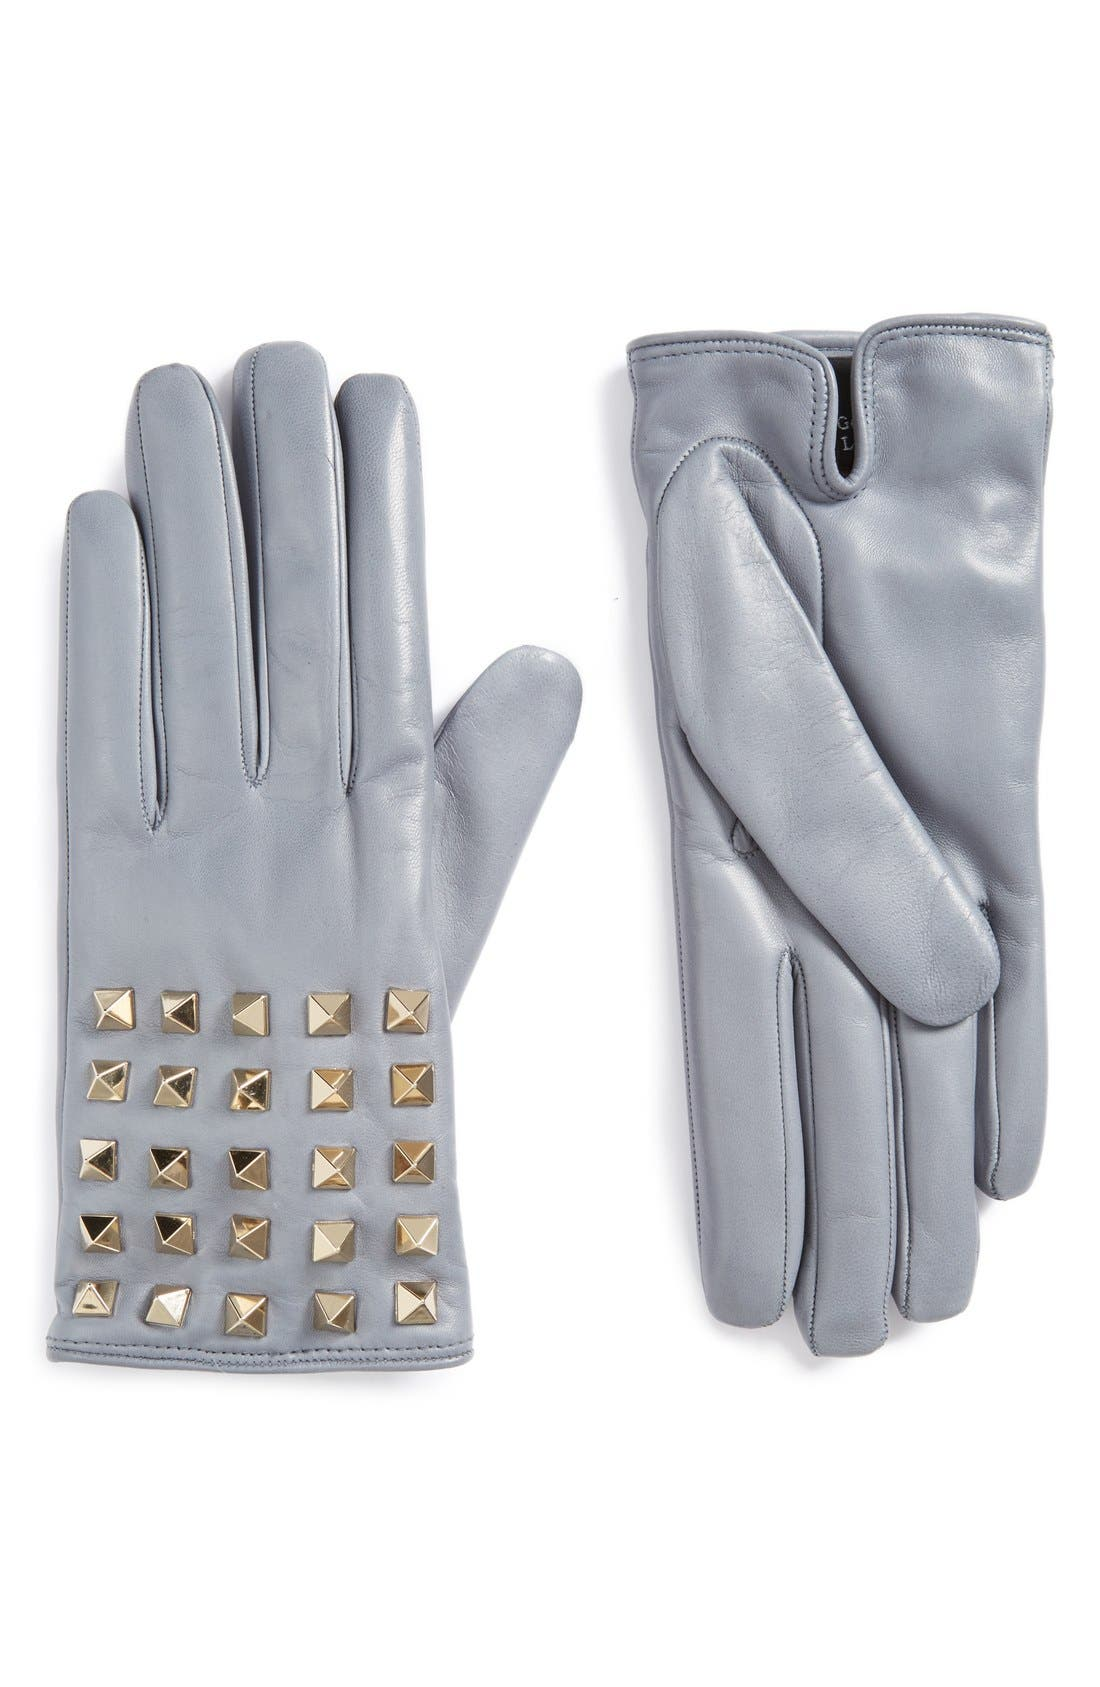 VALENTINO GARAVANI Rockstud Leather Gloves